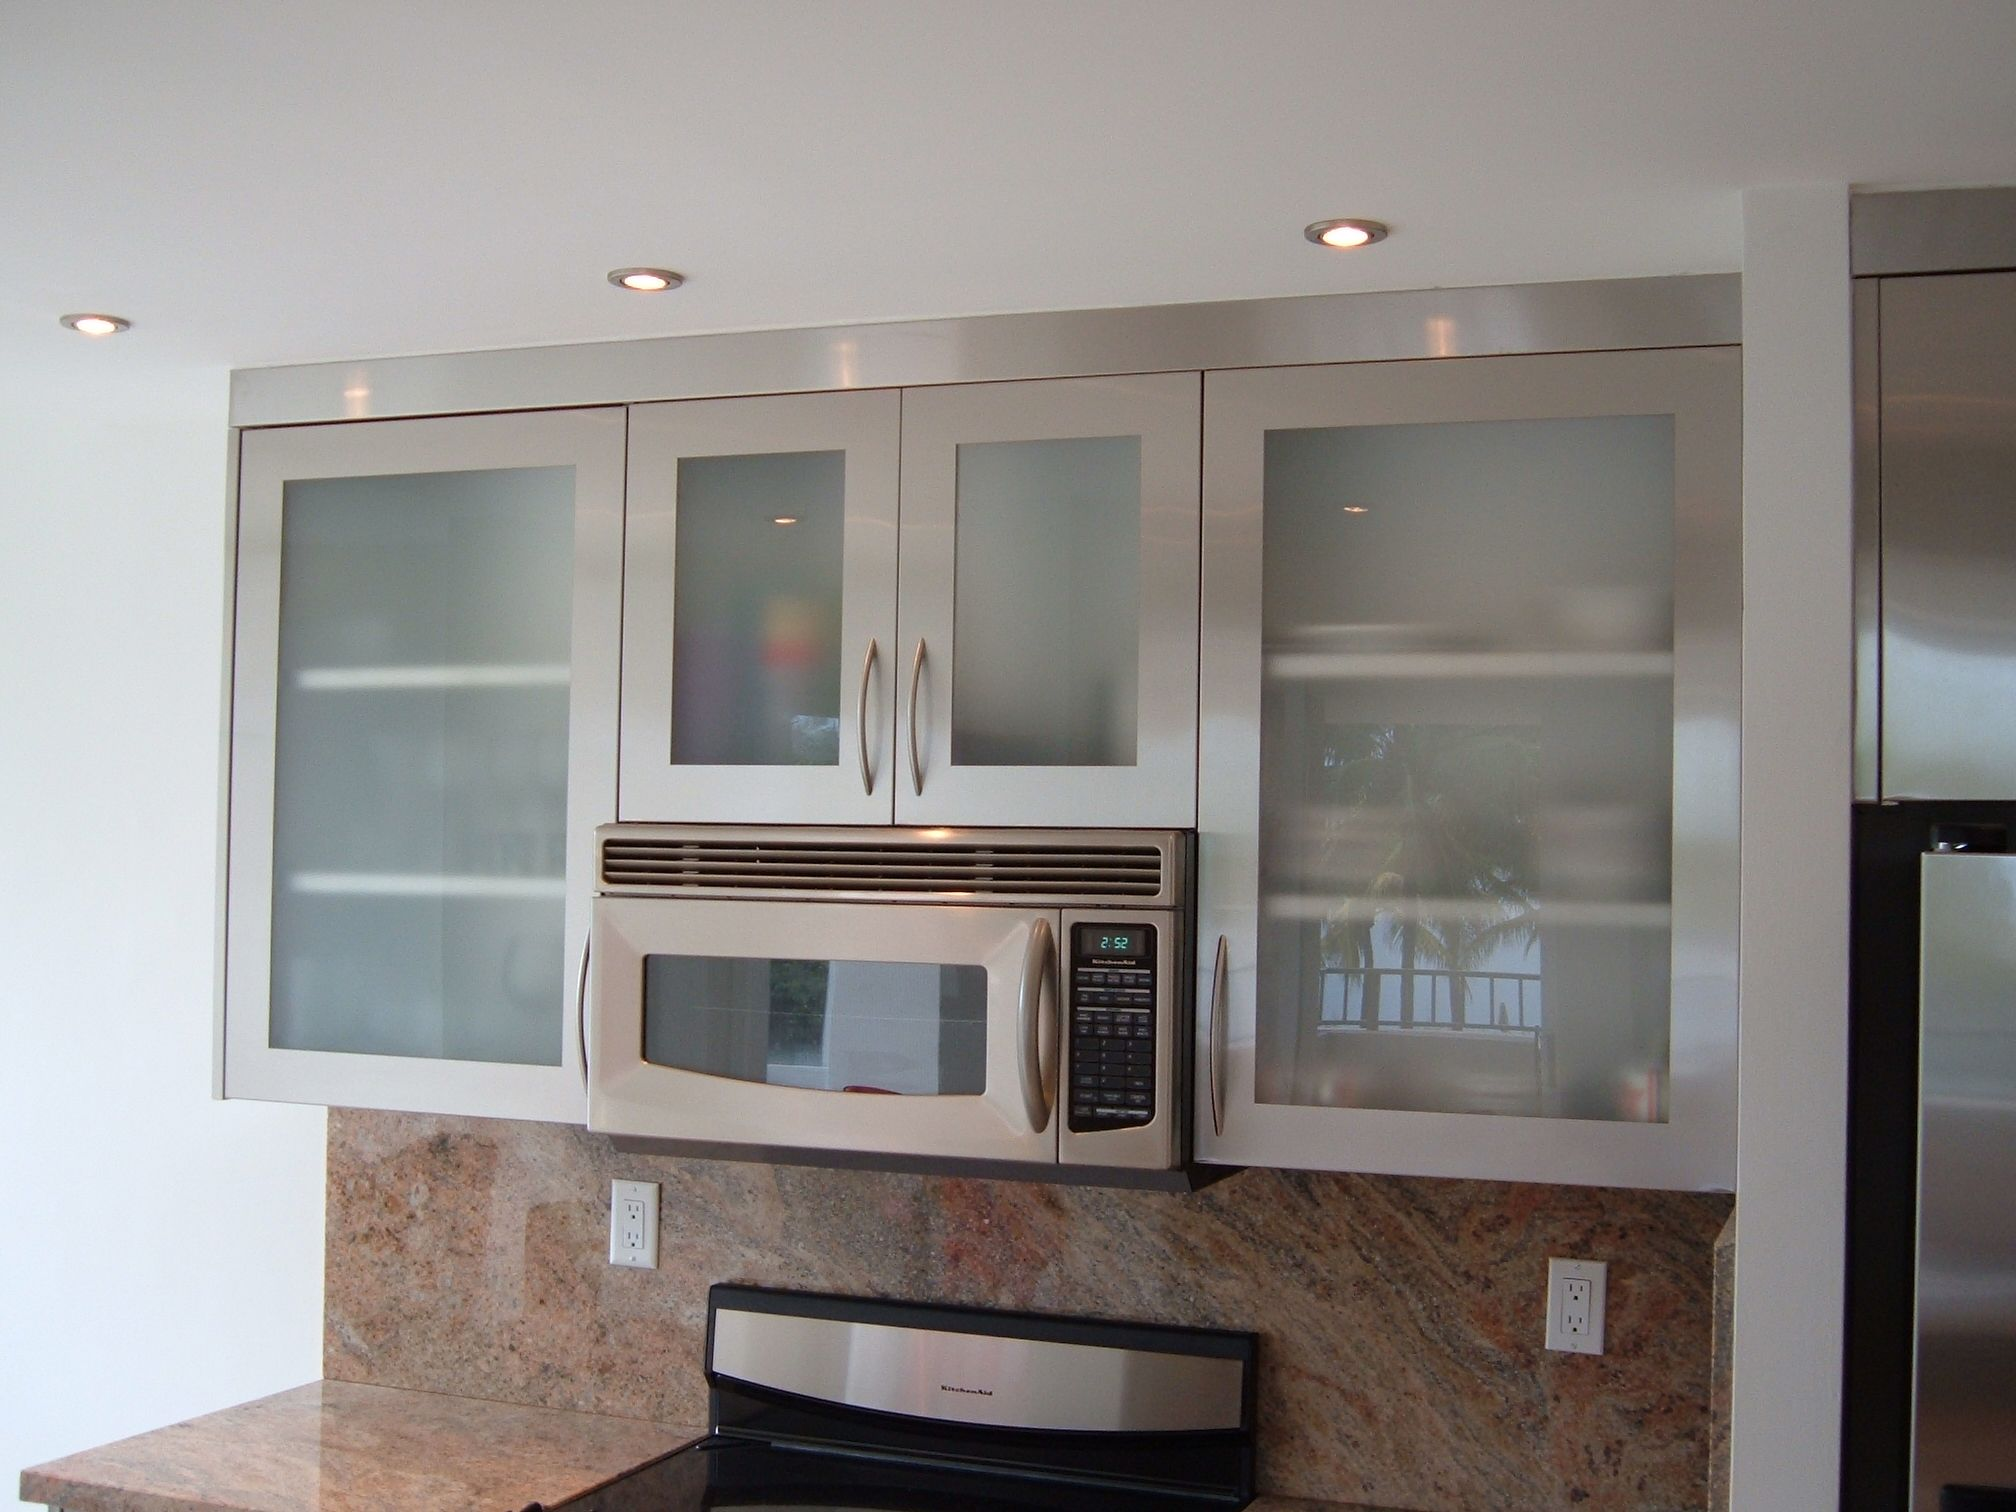 Stainless Steel Kitchen Cabinet Doors Steel Kitchen CabiDoors With Stainless Steel Kitchen Cabinets